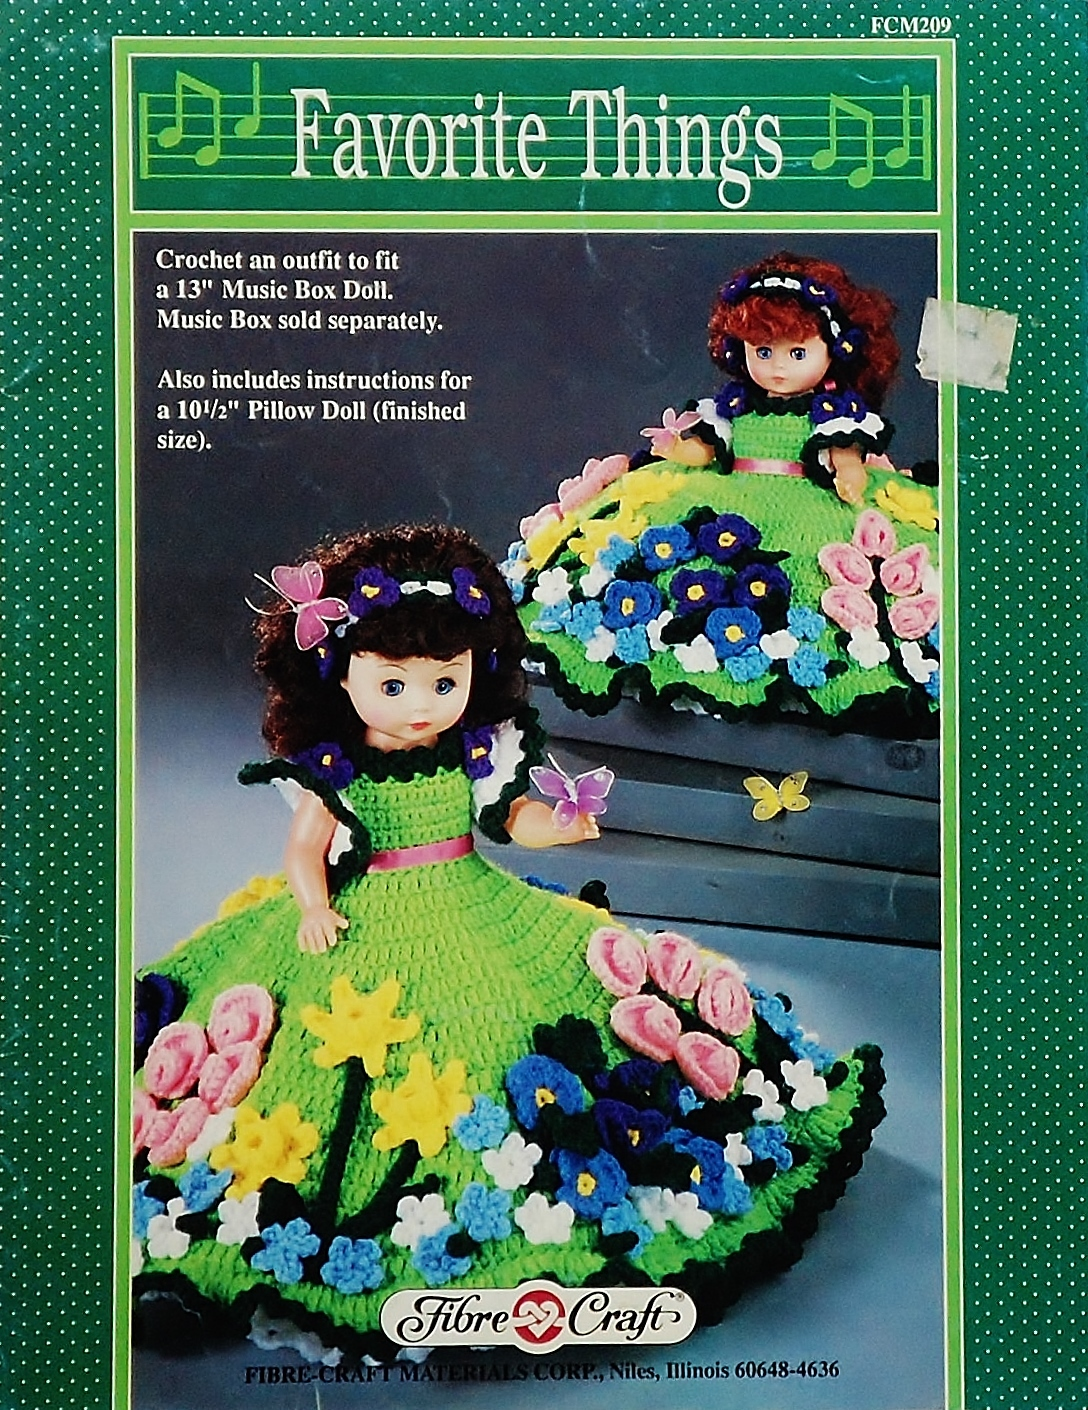 Fibre Craft Favorite Things Crochet Pattern Leaflet FCM209 1990